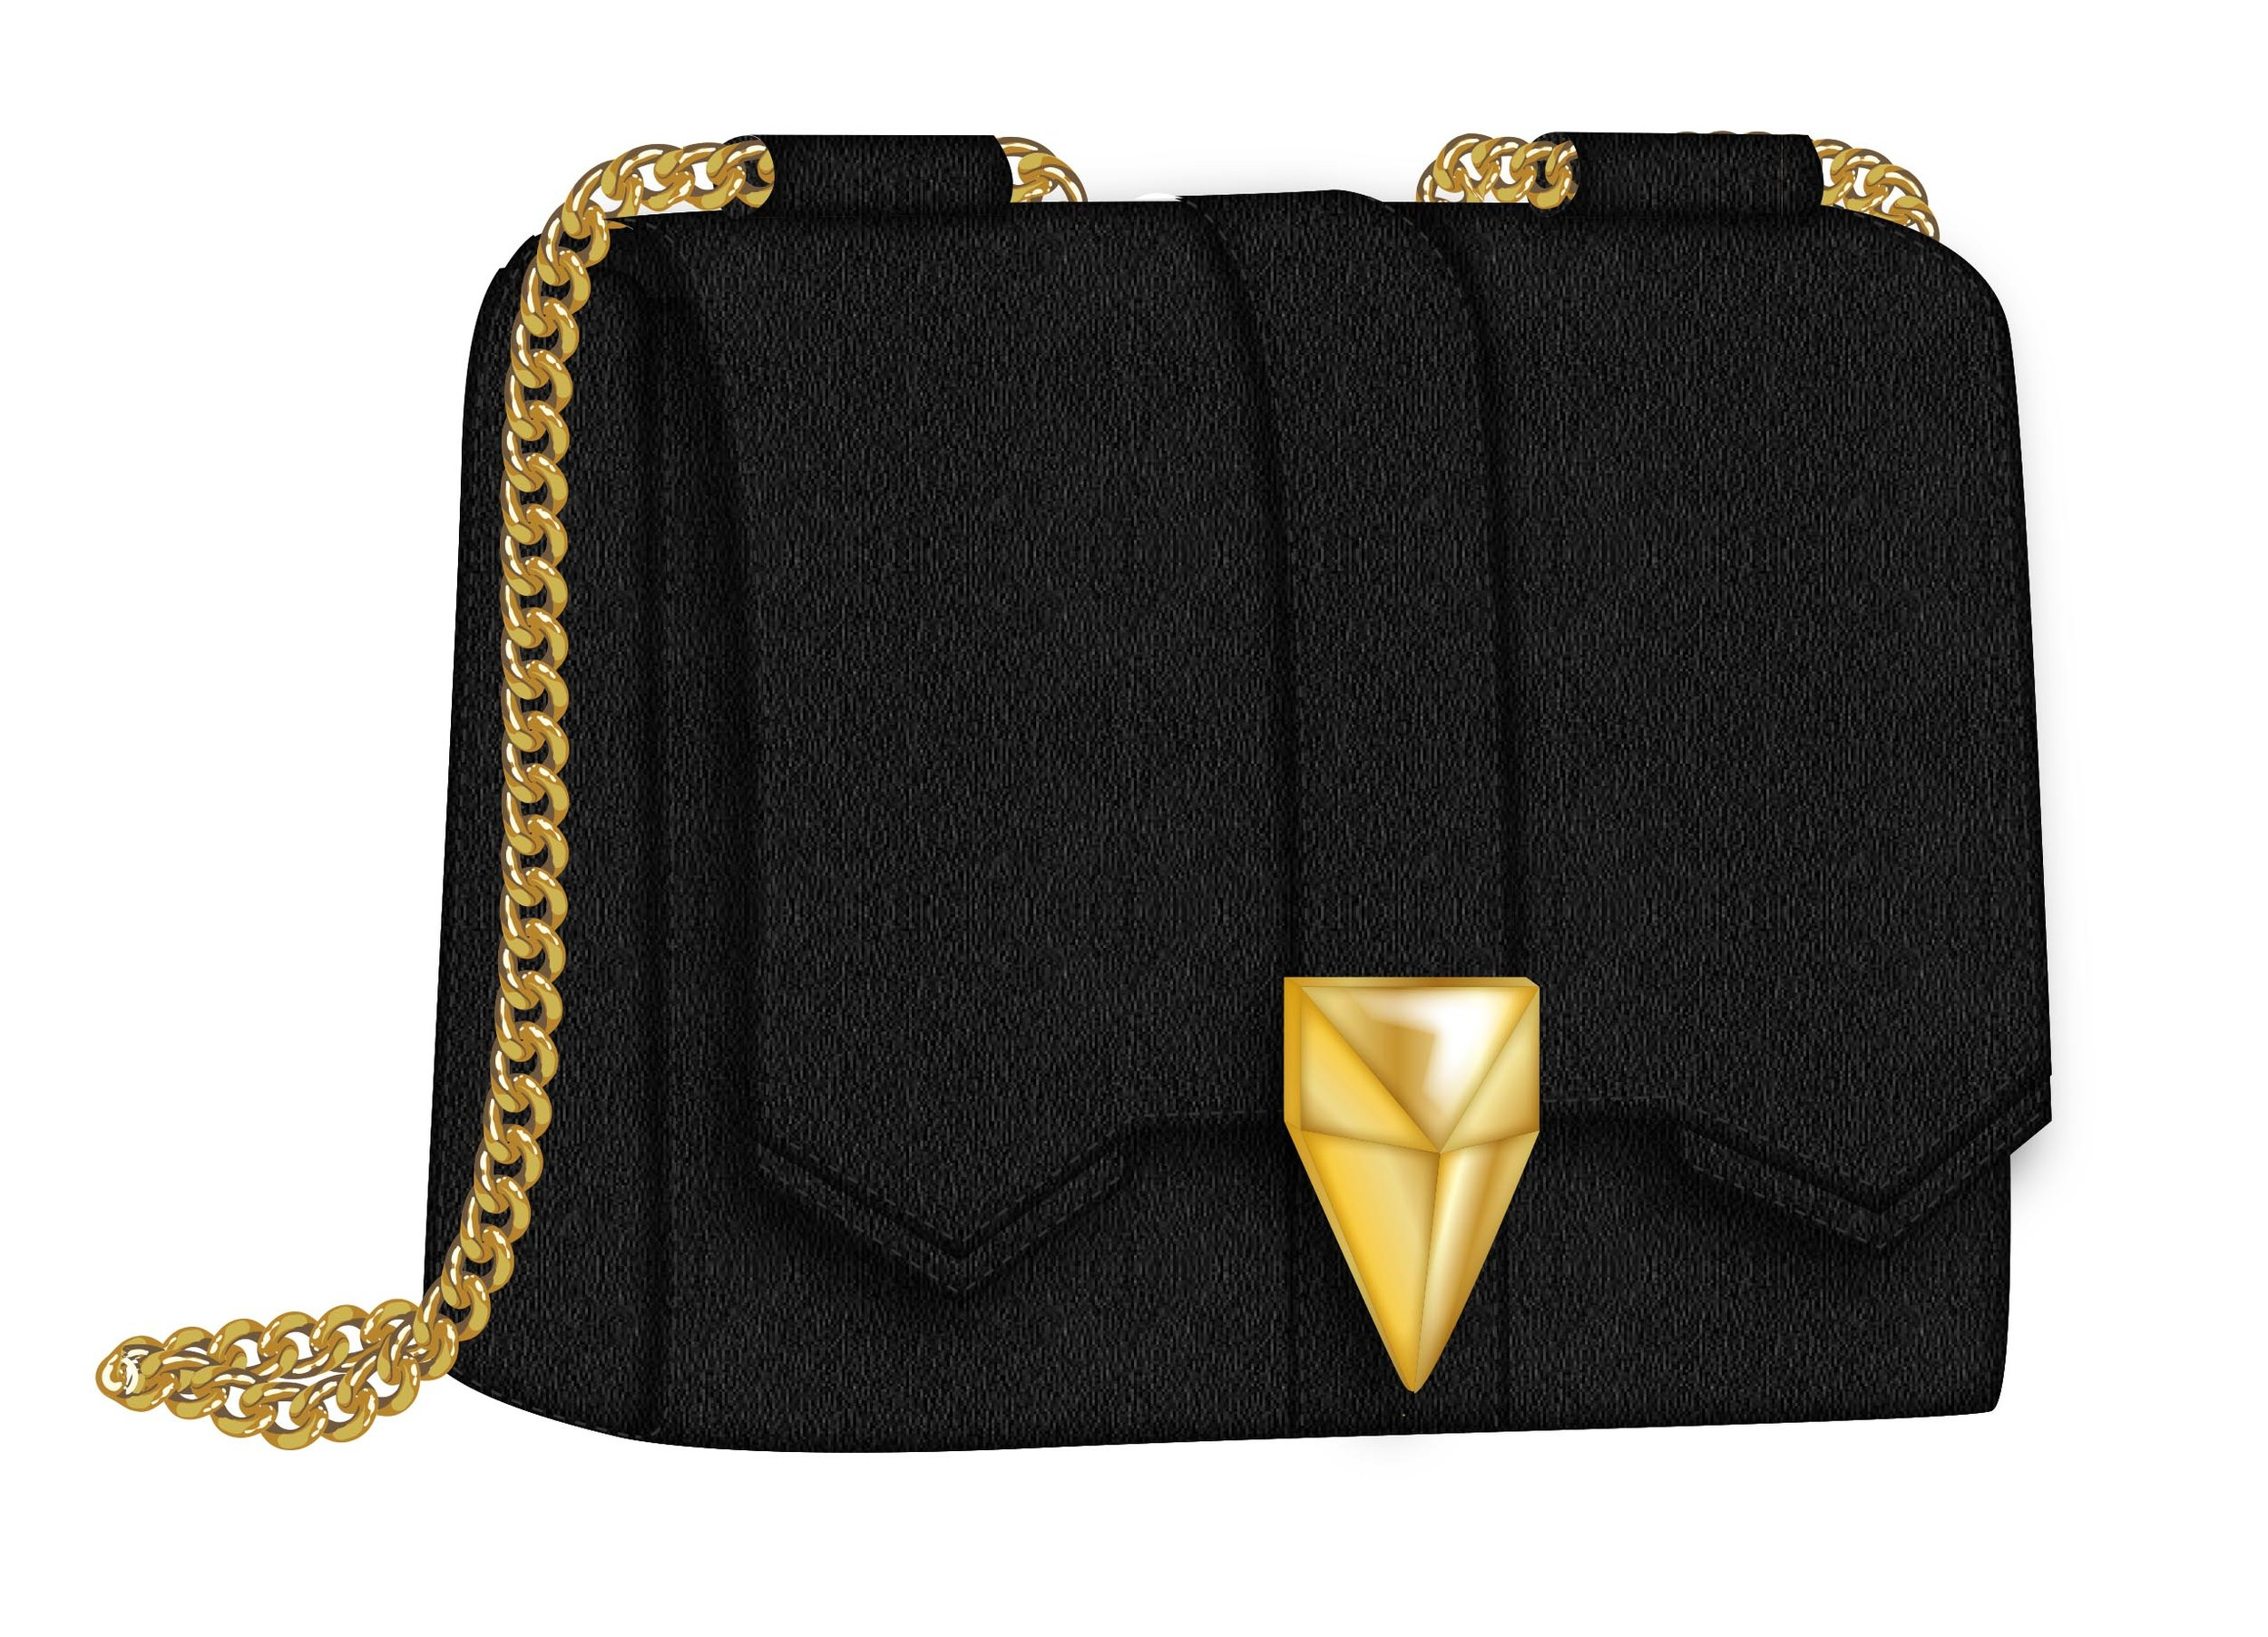 BLACK-SHOULDERBAG-1.jpg